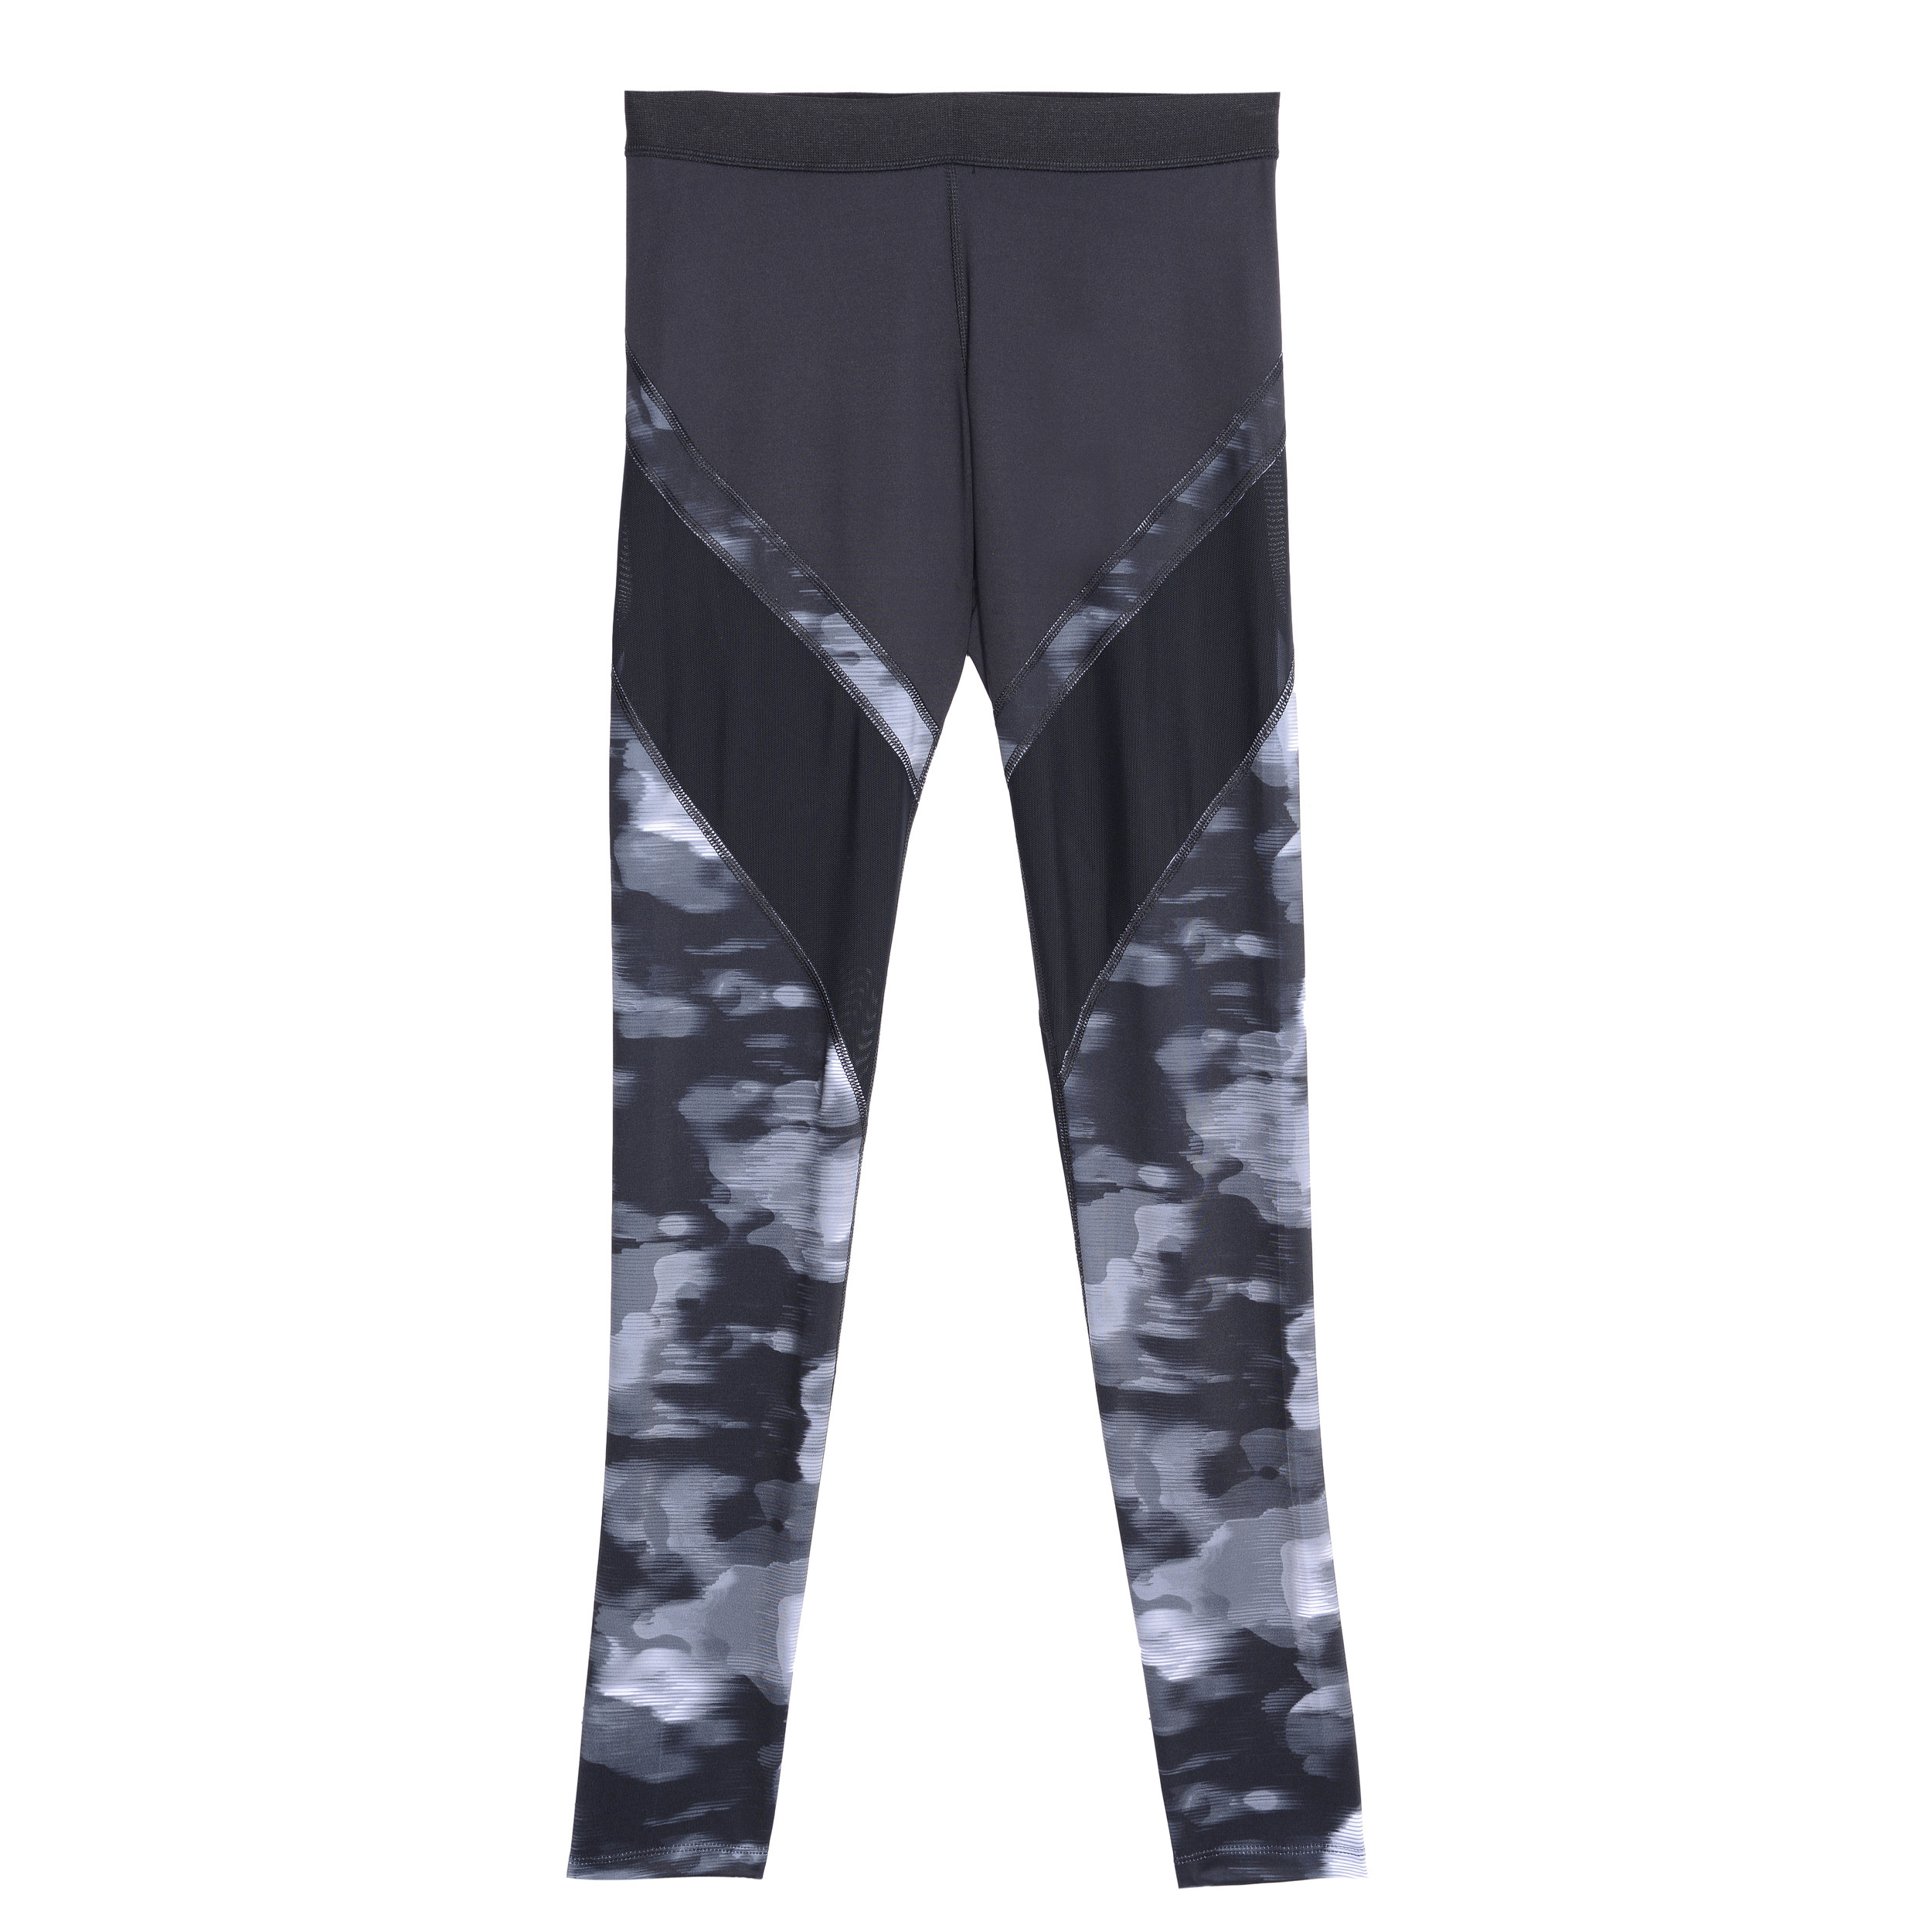 Legging with Printed Piecing in Ebony with Windy Camo Print.JPG